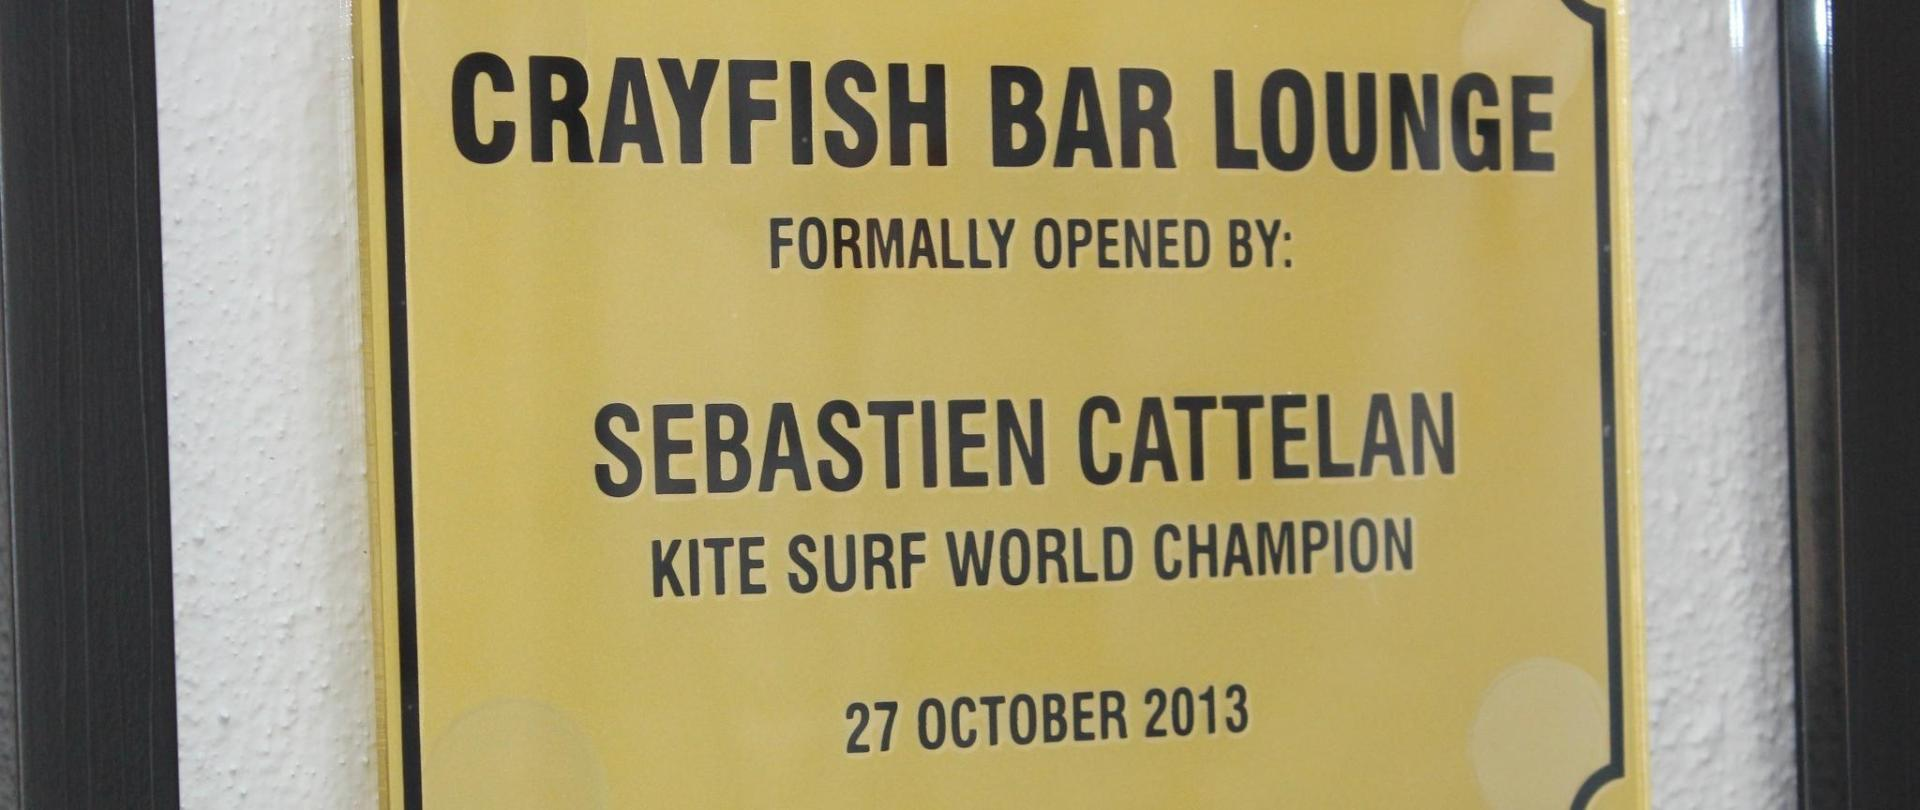 2017 LNH CRAYFISCH BAR & LOUNGE PLAQUE.jpg